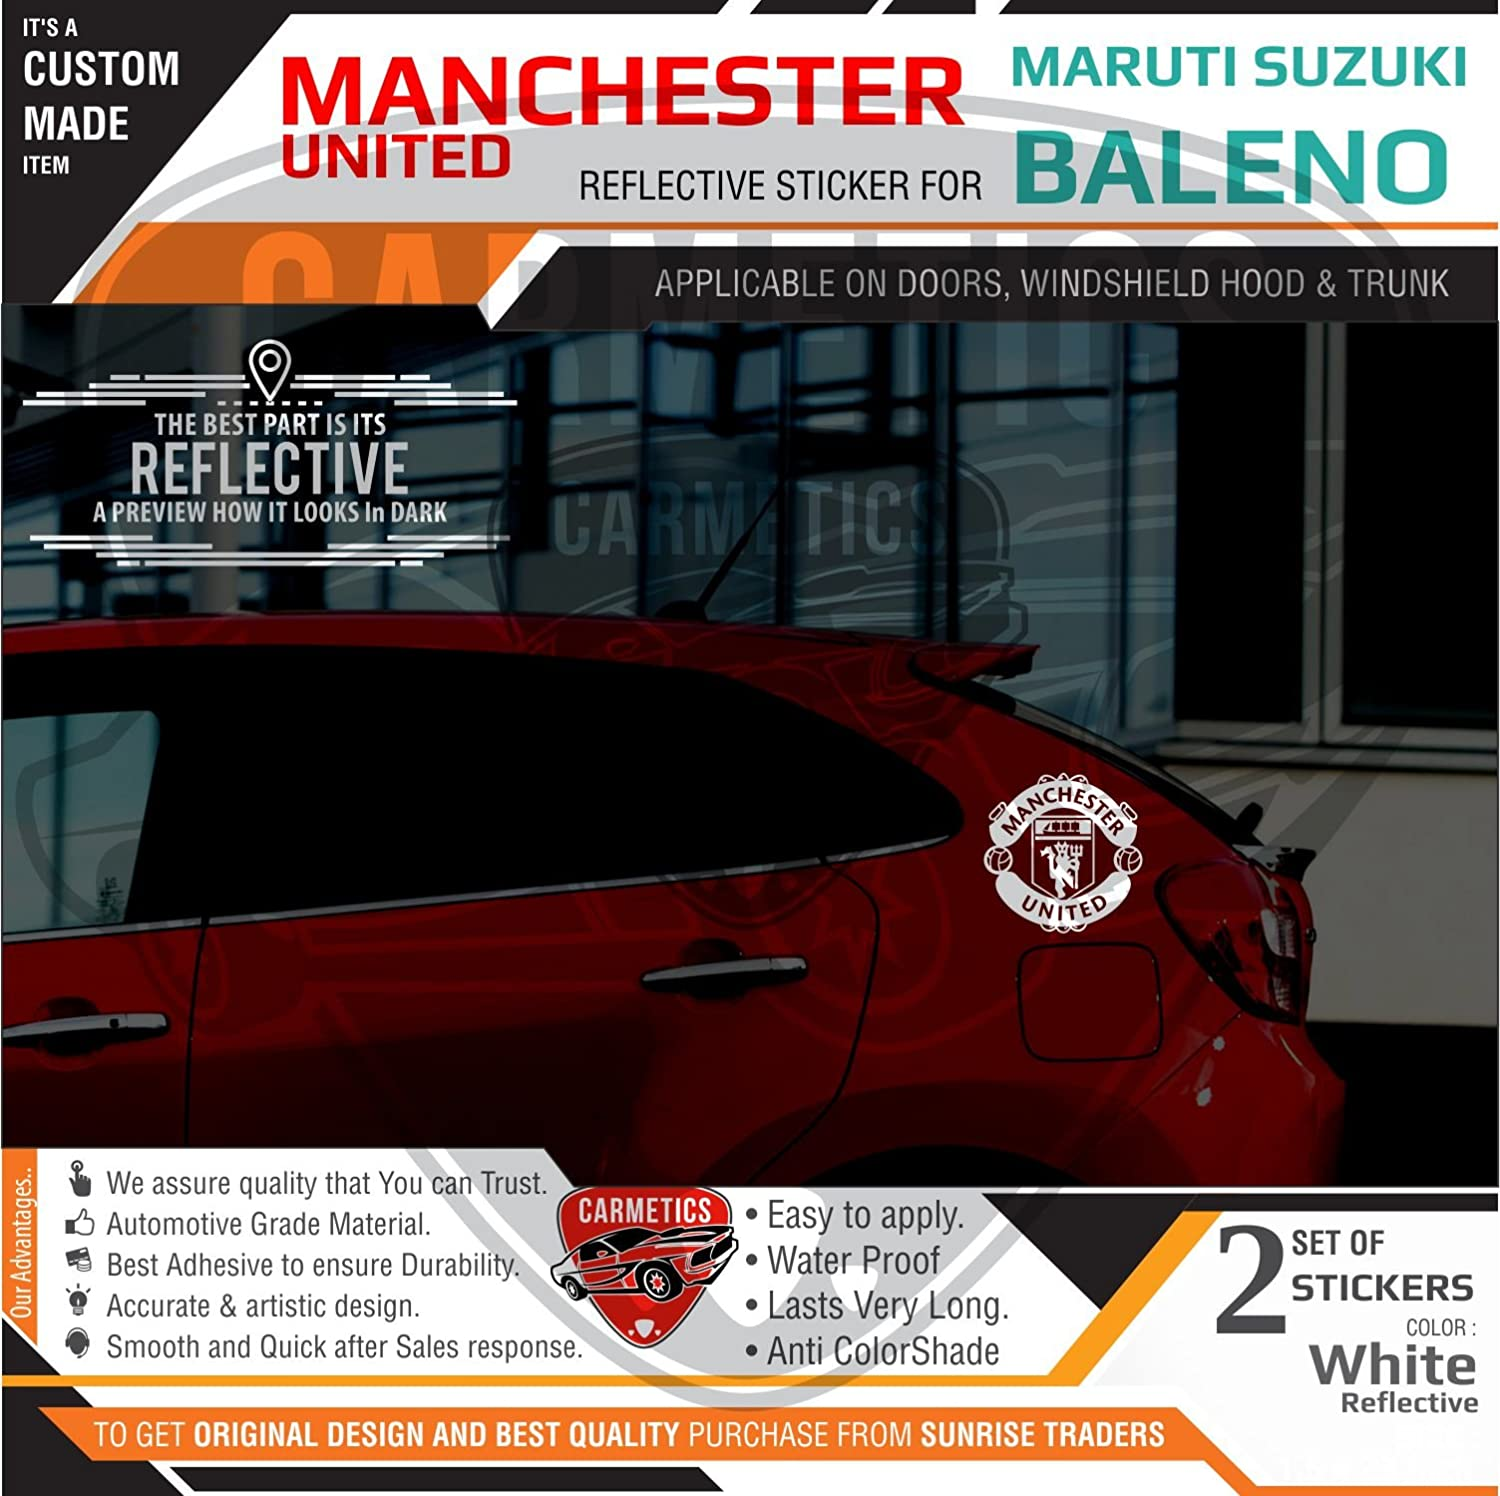 Carmetics manchester united stickers for baleno windows white 2pcs amazon in car motorbike